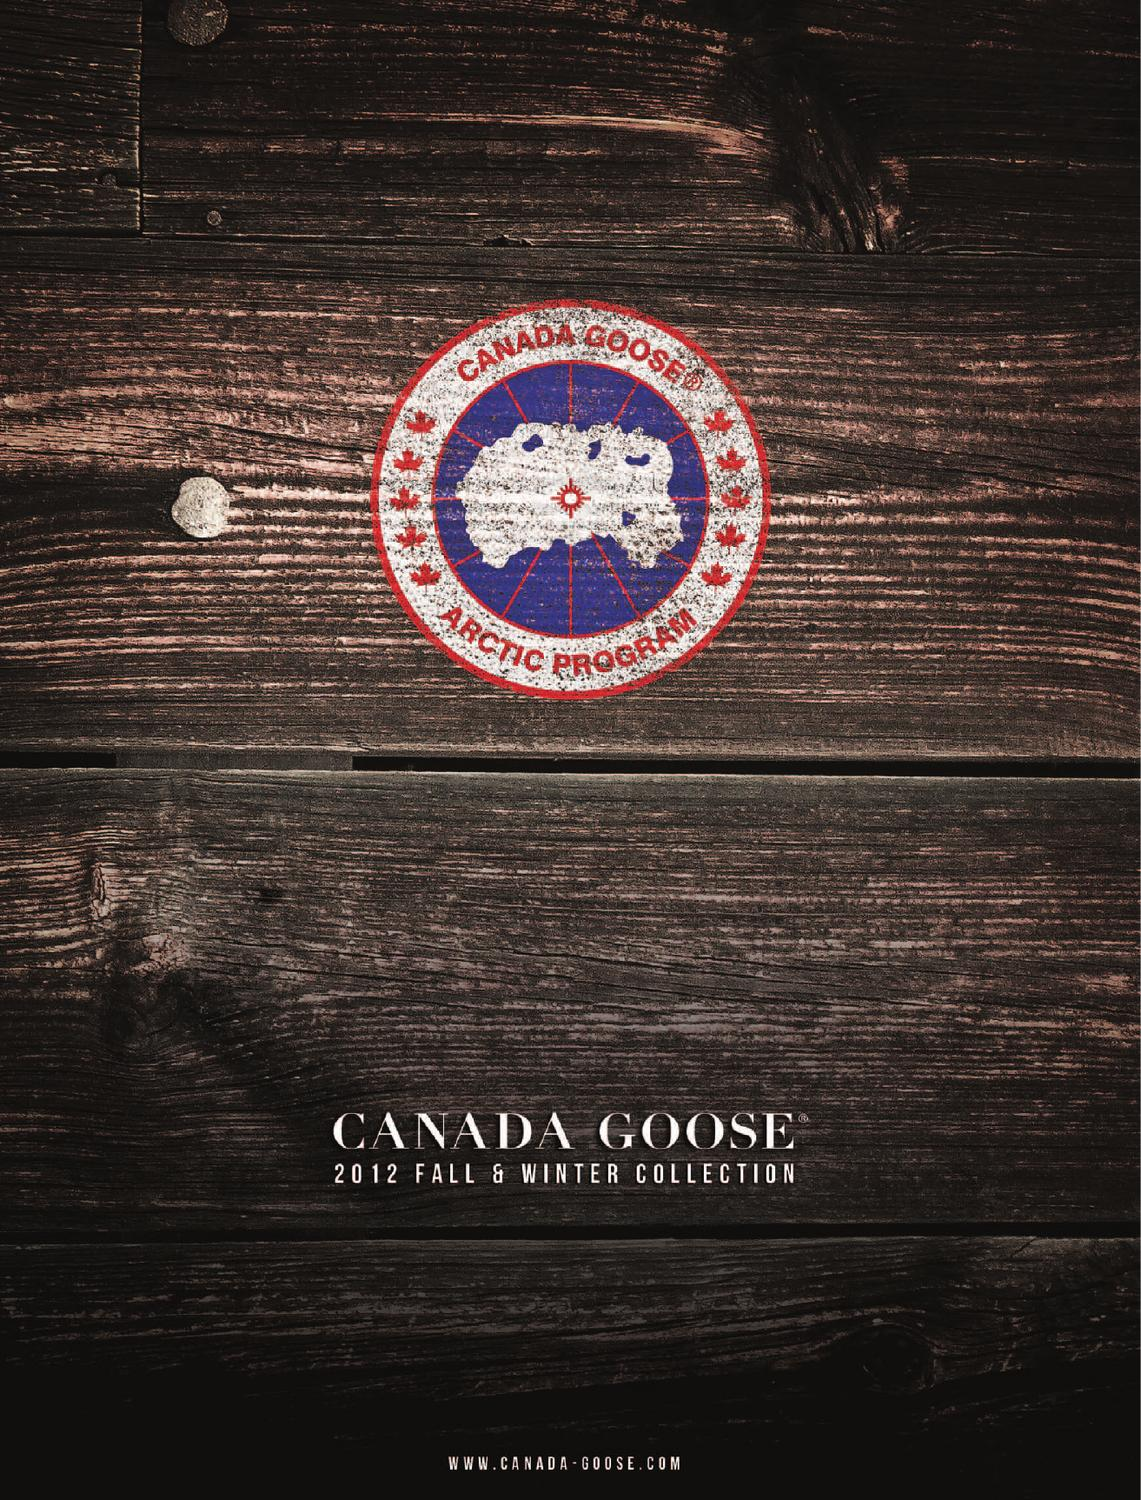 Canada Goose hats outlet official - Canada Goose catalogue winter 2011/12 by Sport Koncept s.r.o - issuu